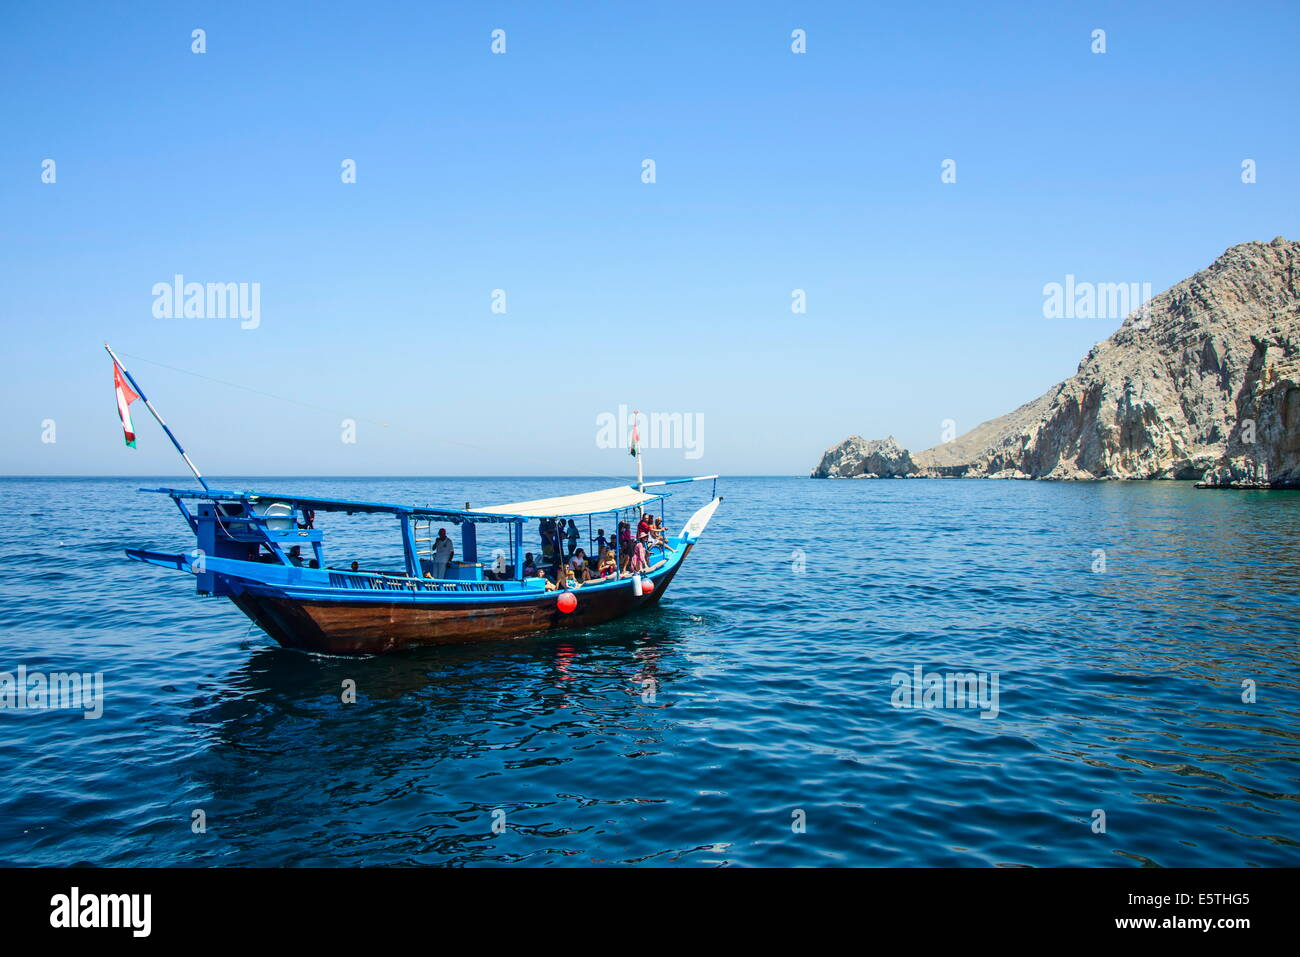 Tourist boat in form of a dhow sailing in the Khor ash-sham fjord, Musandam, Oman, Middle East - Stock Image